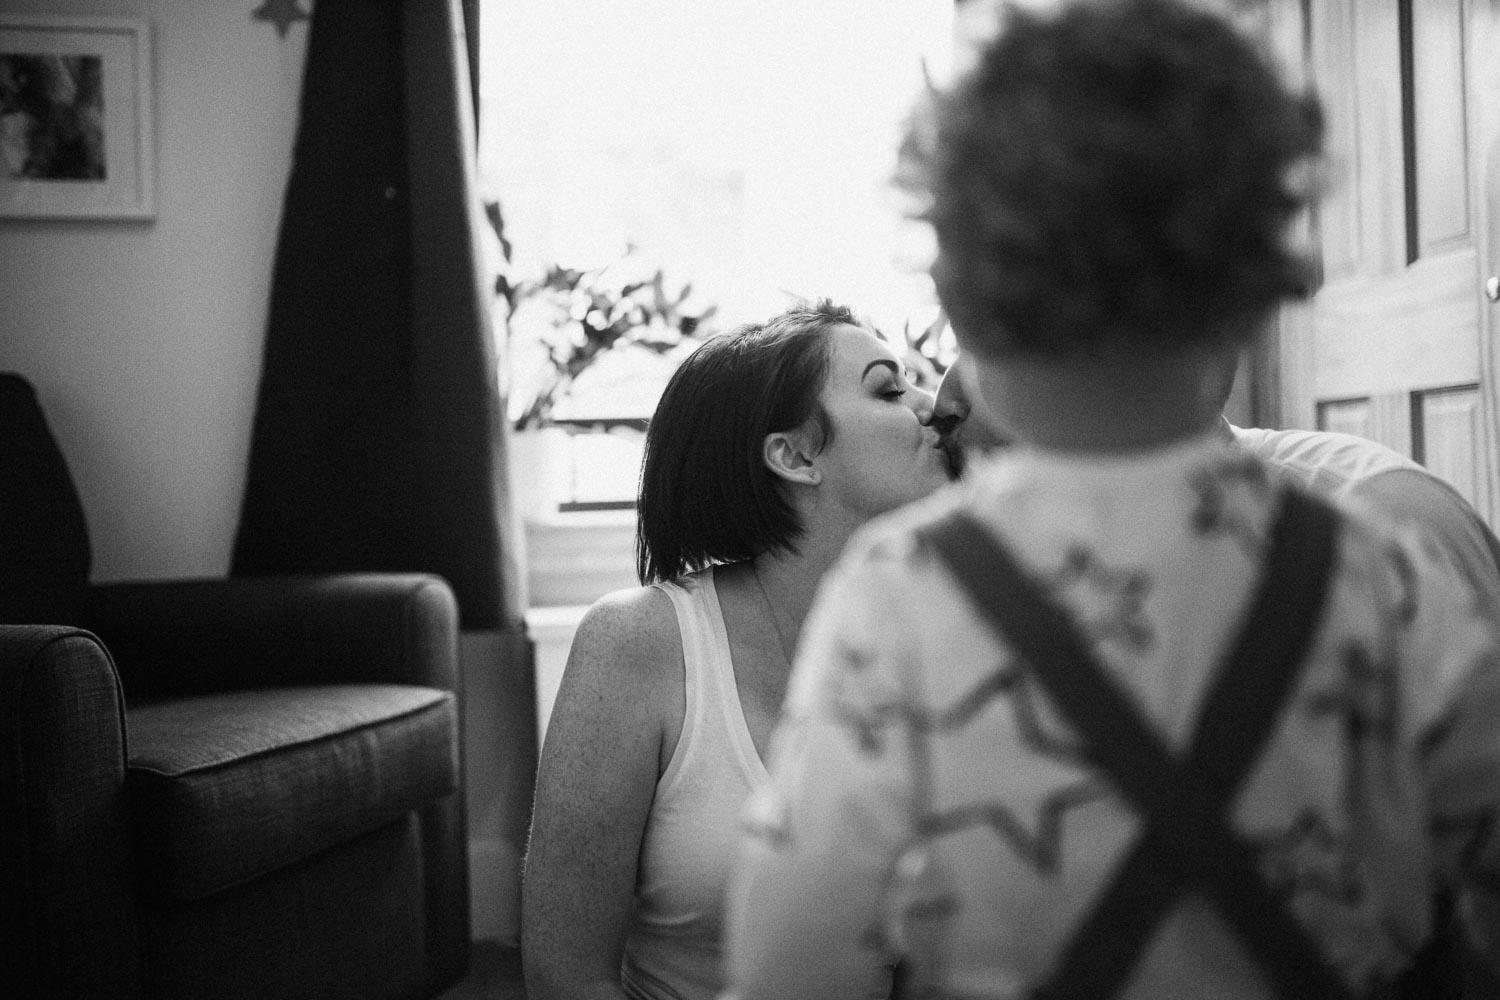 candid-black-and-white-photo-intimate-family-moment-bountiful-utah